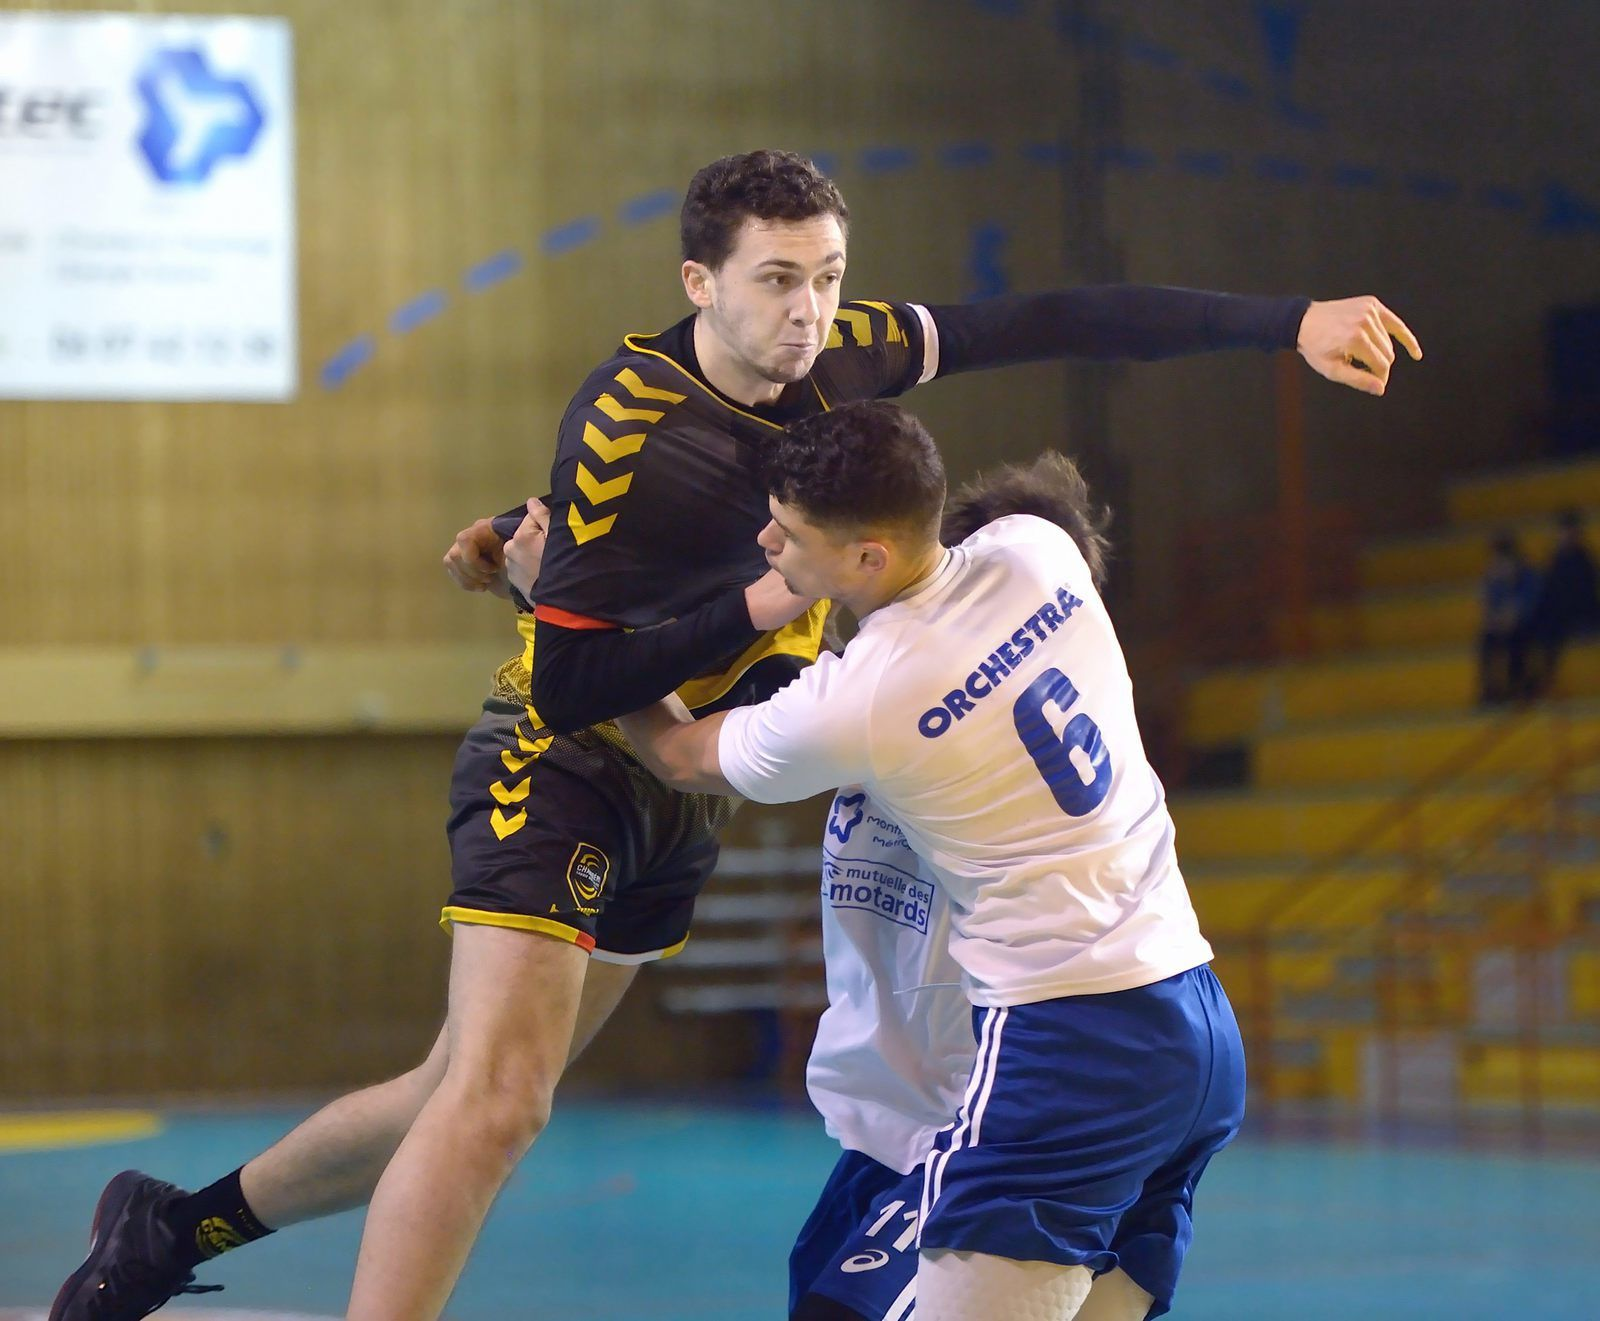 N1 MONTPELLIER2 plus fort que CHAMBERY2 samedi 4 mars 2017